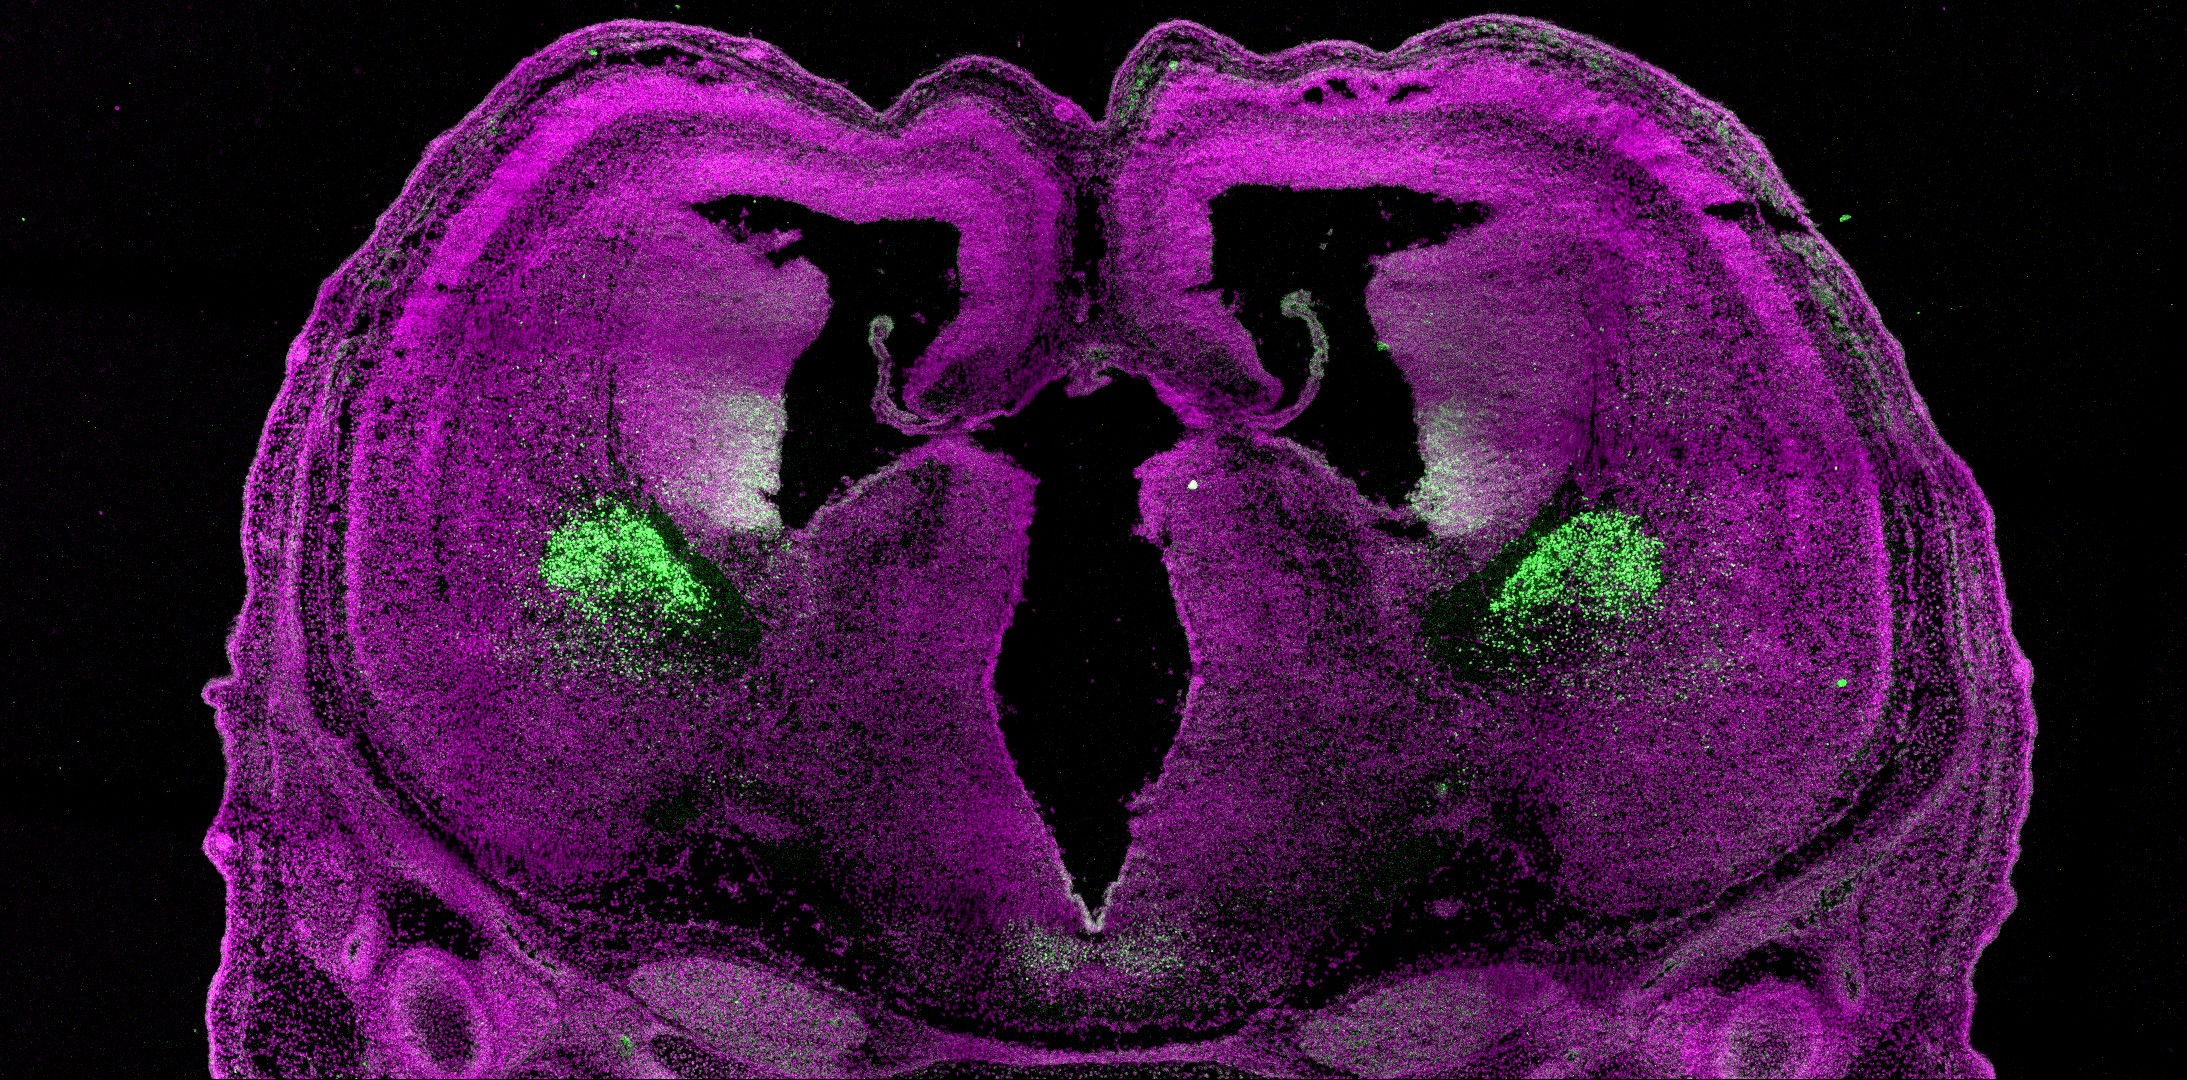 Embryonic mouse brain stained with antibodies against Nkx2.1 (green) - a critical transcription factor that defines specific brain regions important for the creation of interneurons, cells that play a critical role in establishing the excitatory and inhibitory balance of the brain later in life.